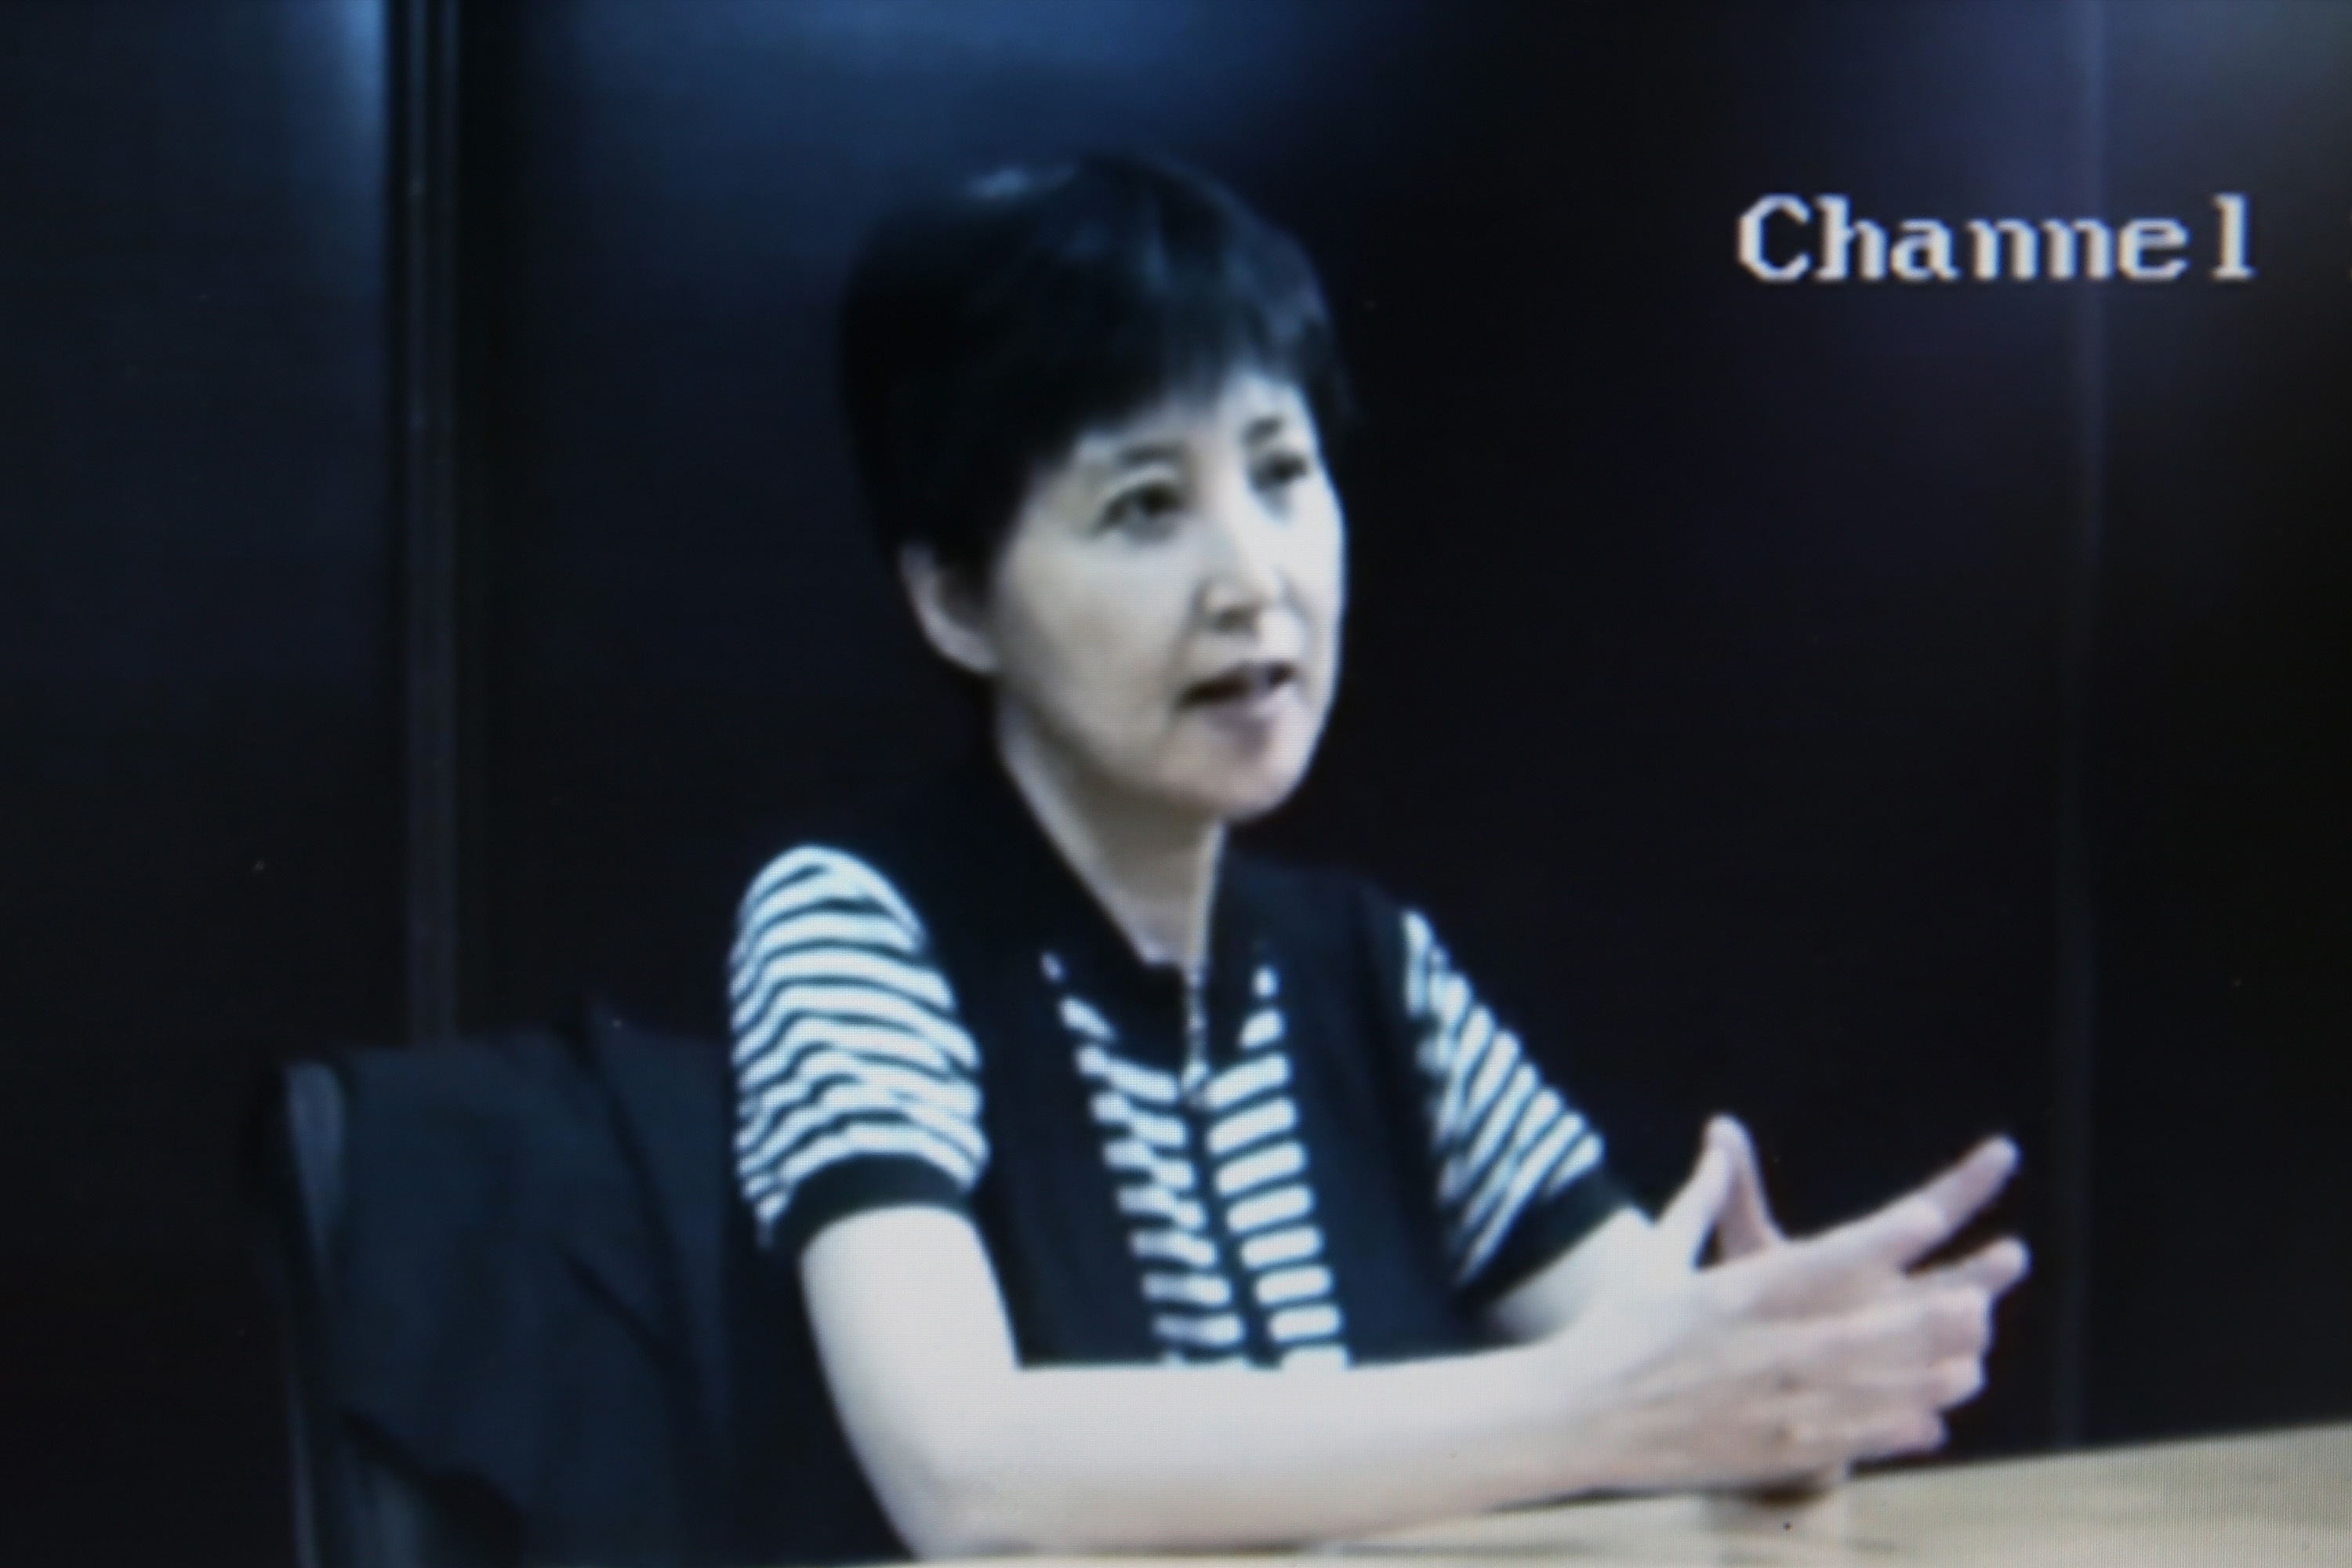 A screen grab shows a video of Gu Kailai, wife of ousted Chinese Communist Party Politburo member Bo Xilai, at the media room for Bo's trial on Aug. 23, 2013, in Jinan, China